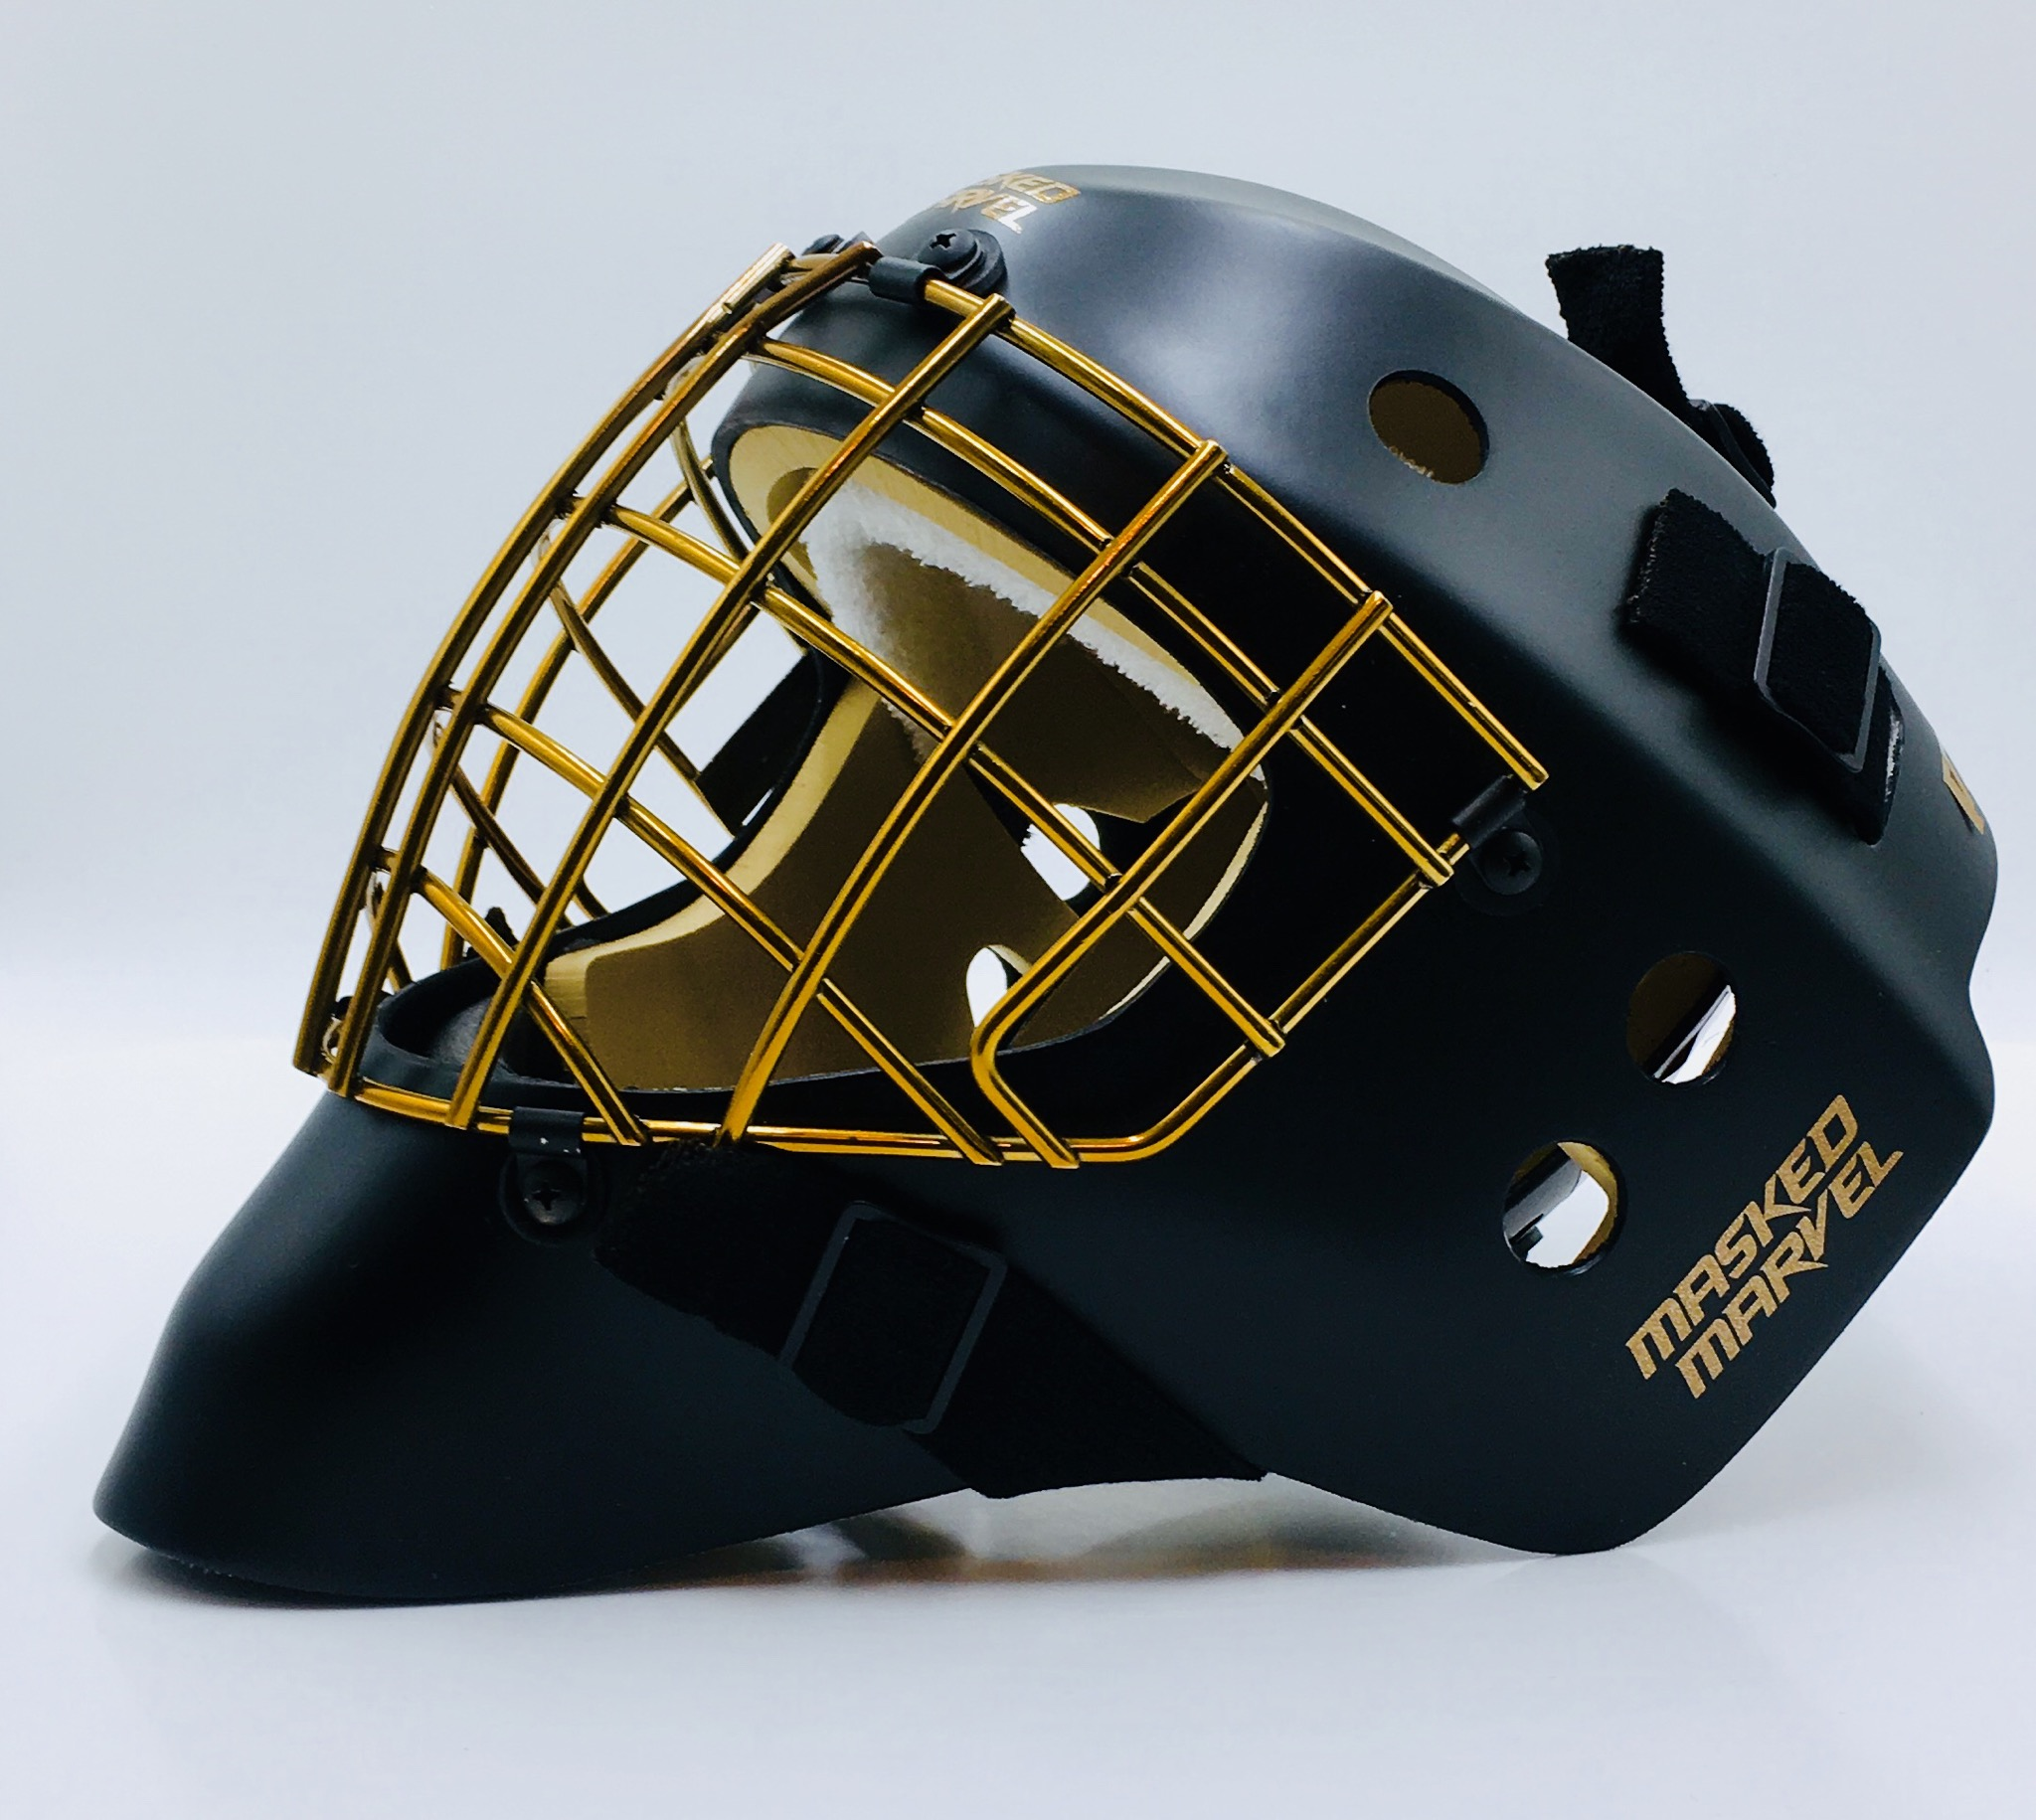 Masks masked marvel goalie helmets its your head you decide bandit model maxwellsz